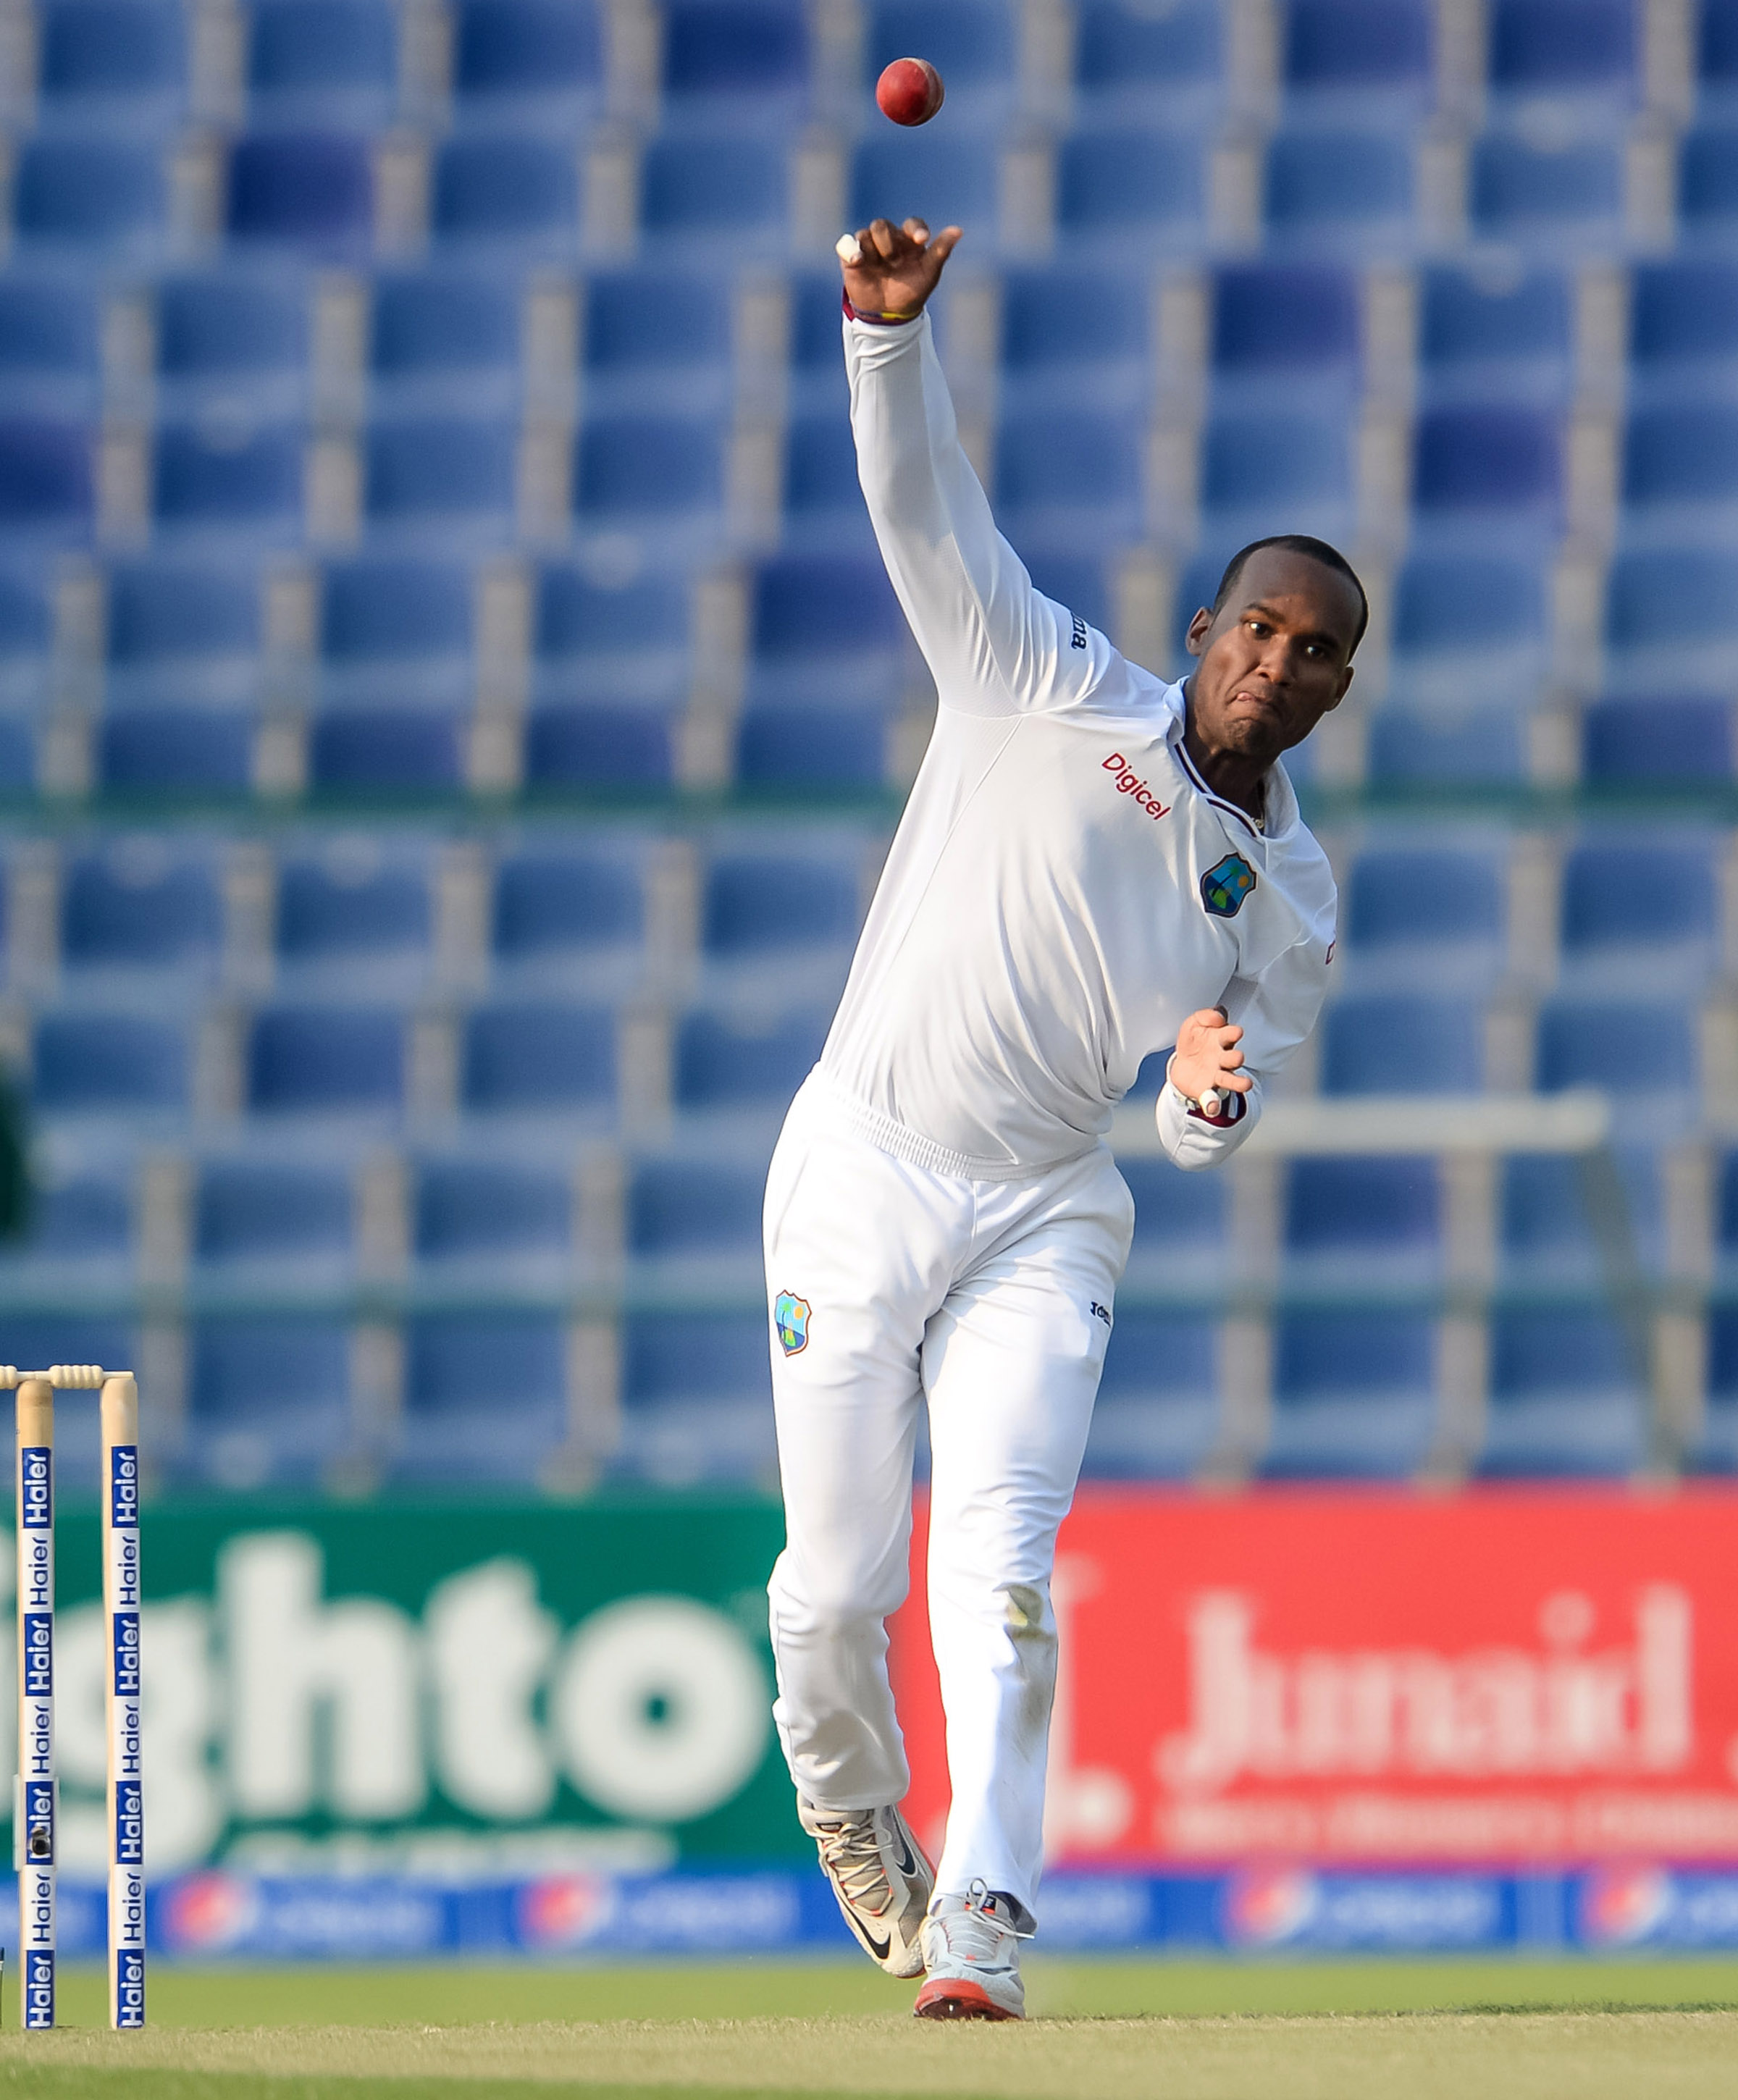 Brathwaite bowling in a Test against Pakistan in 2016 // Getty Images